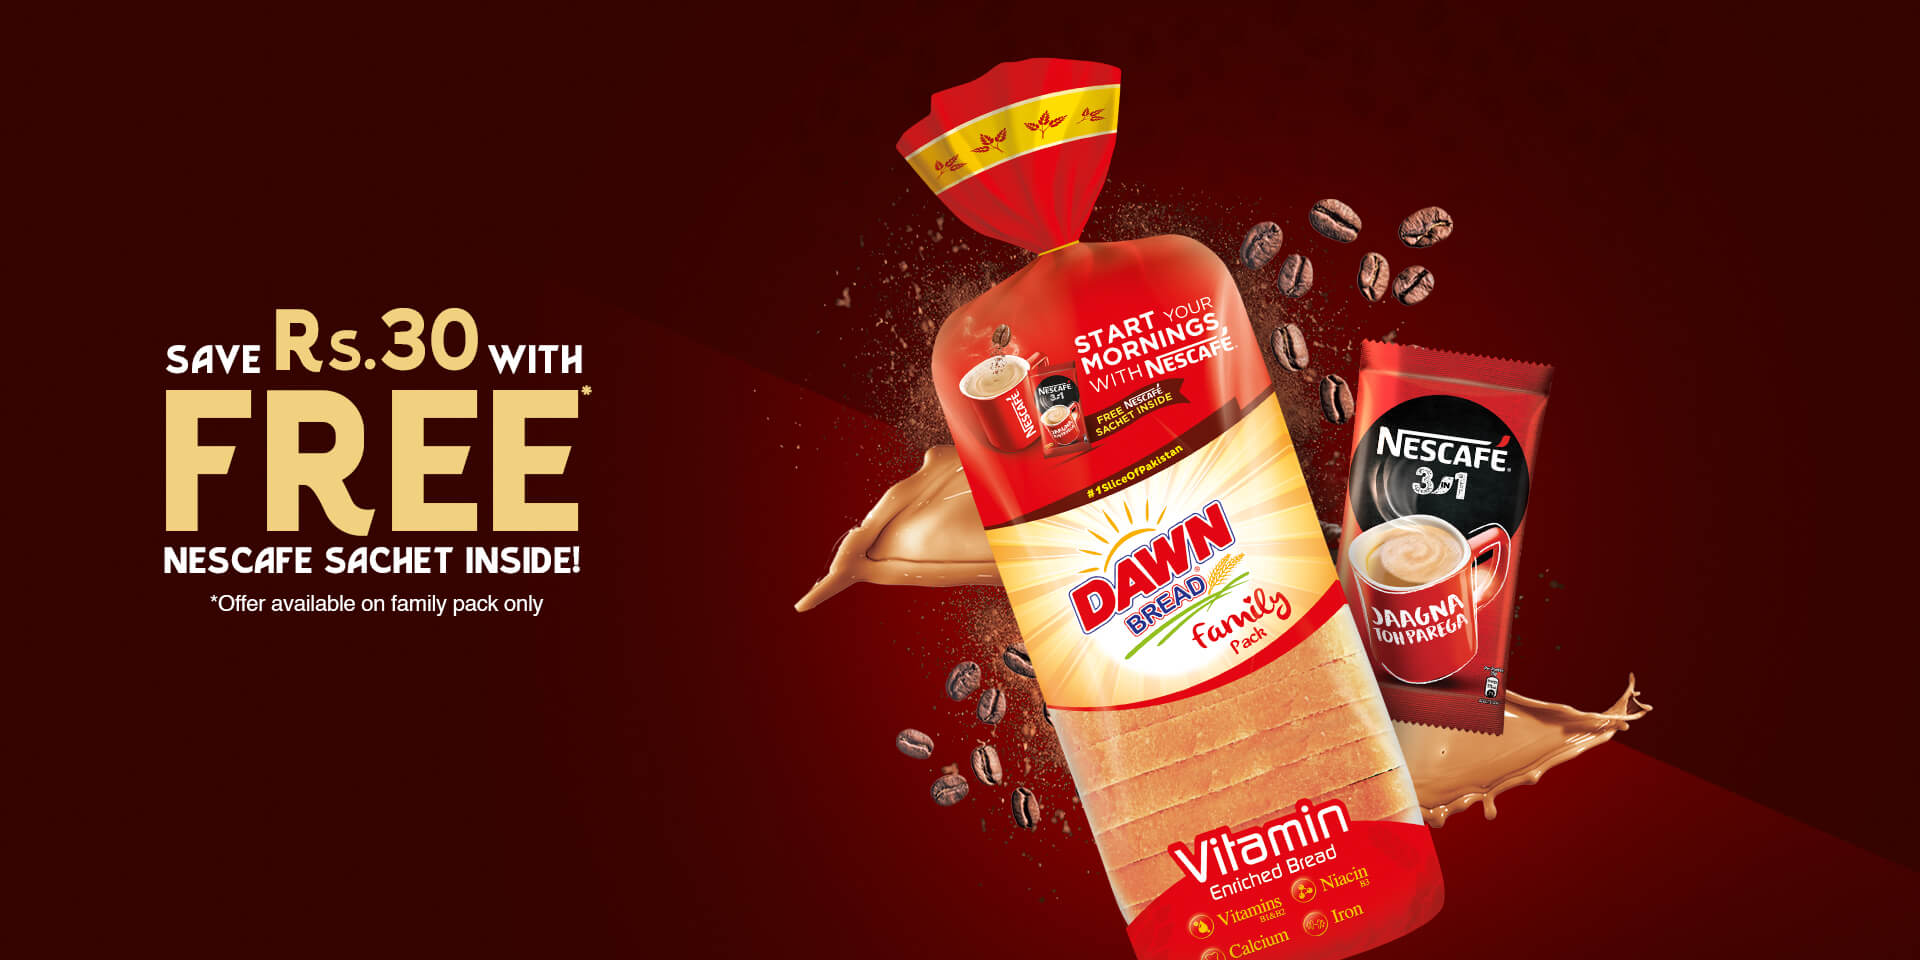 Free Nescafe 3 in 1 Instant Coffee Sachet with Dawn Vitamin Enriched Plain Bread Family Pack